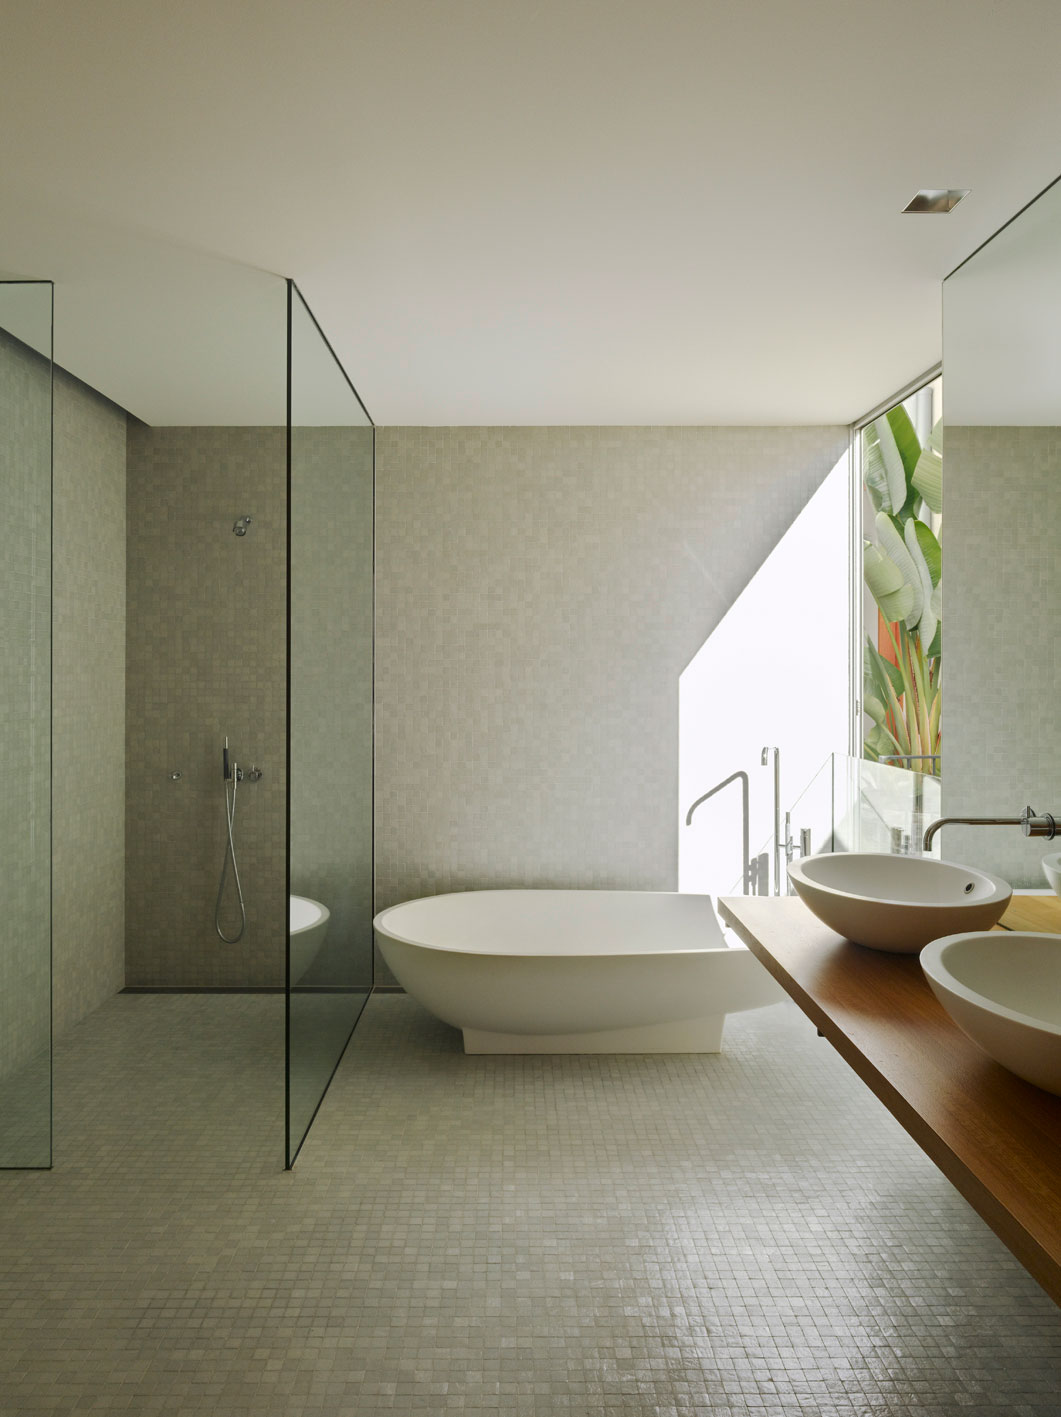 Architectural design without architectural design fees pivotech Bathroom interior designs photos